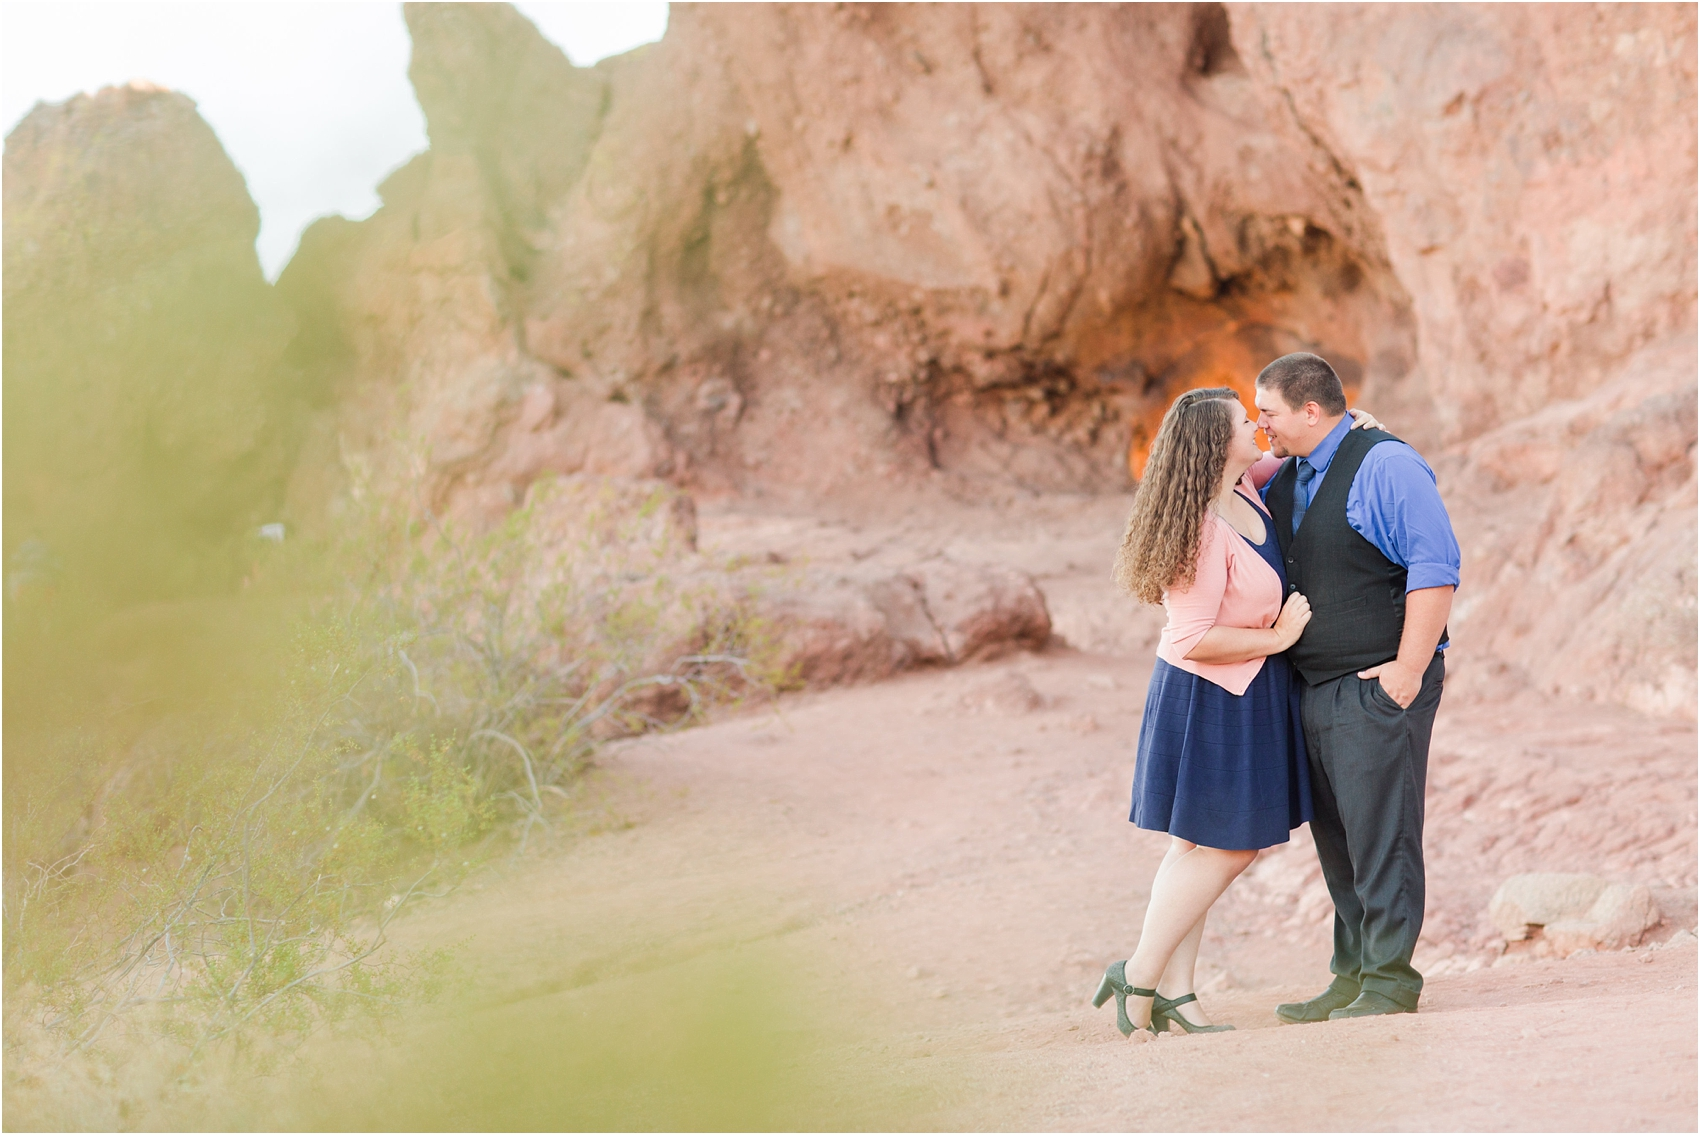 romantic-desert-engagement-photos-in-scottsdale-arizona-courtney-carolyn-photography-by-katelyn-james_0011.jpg